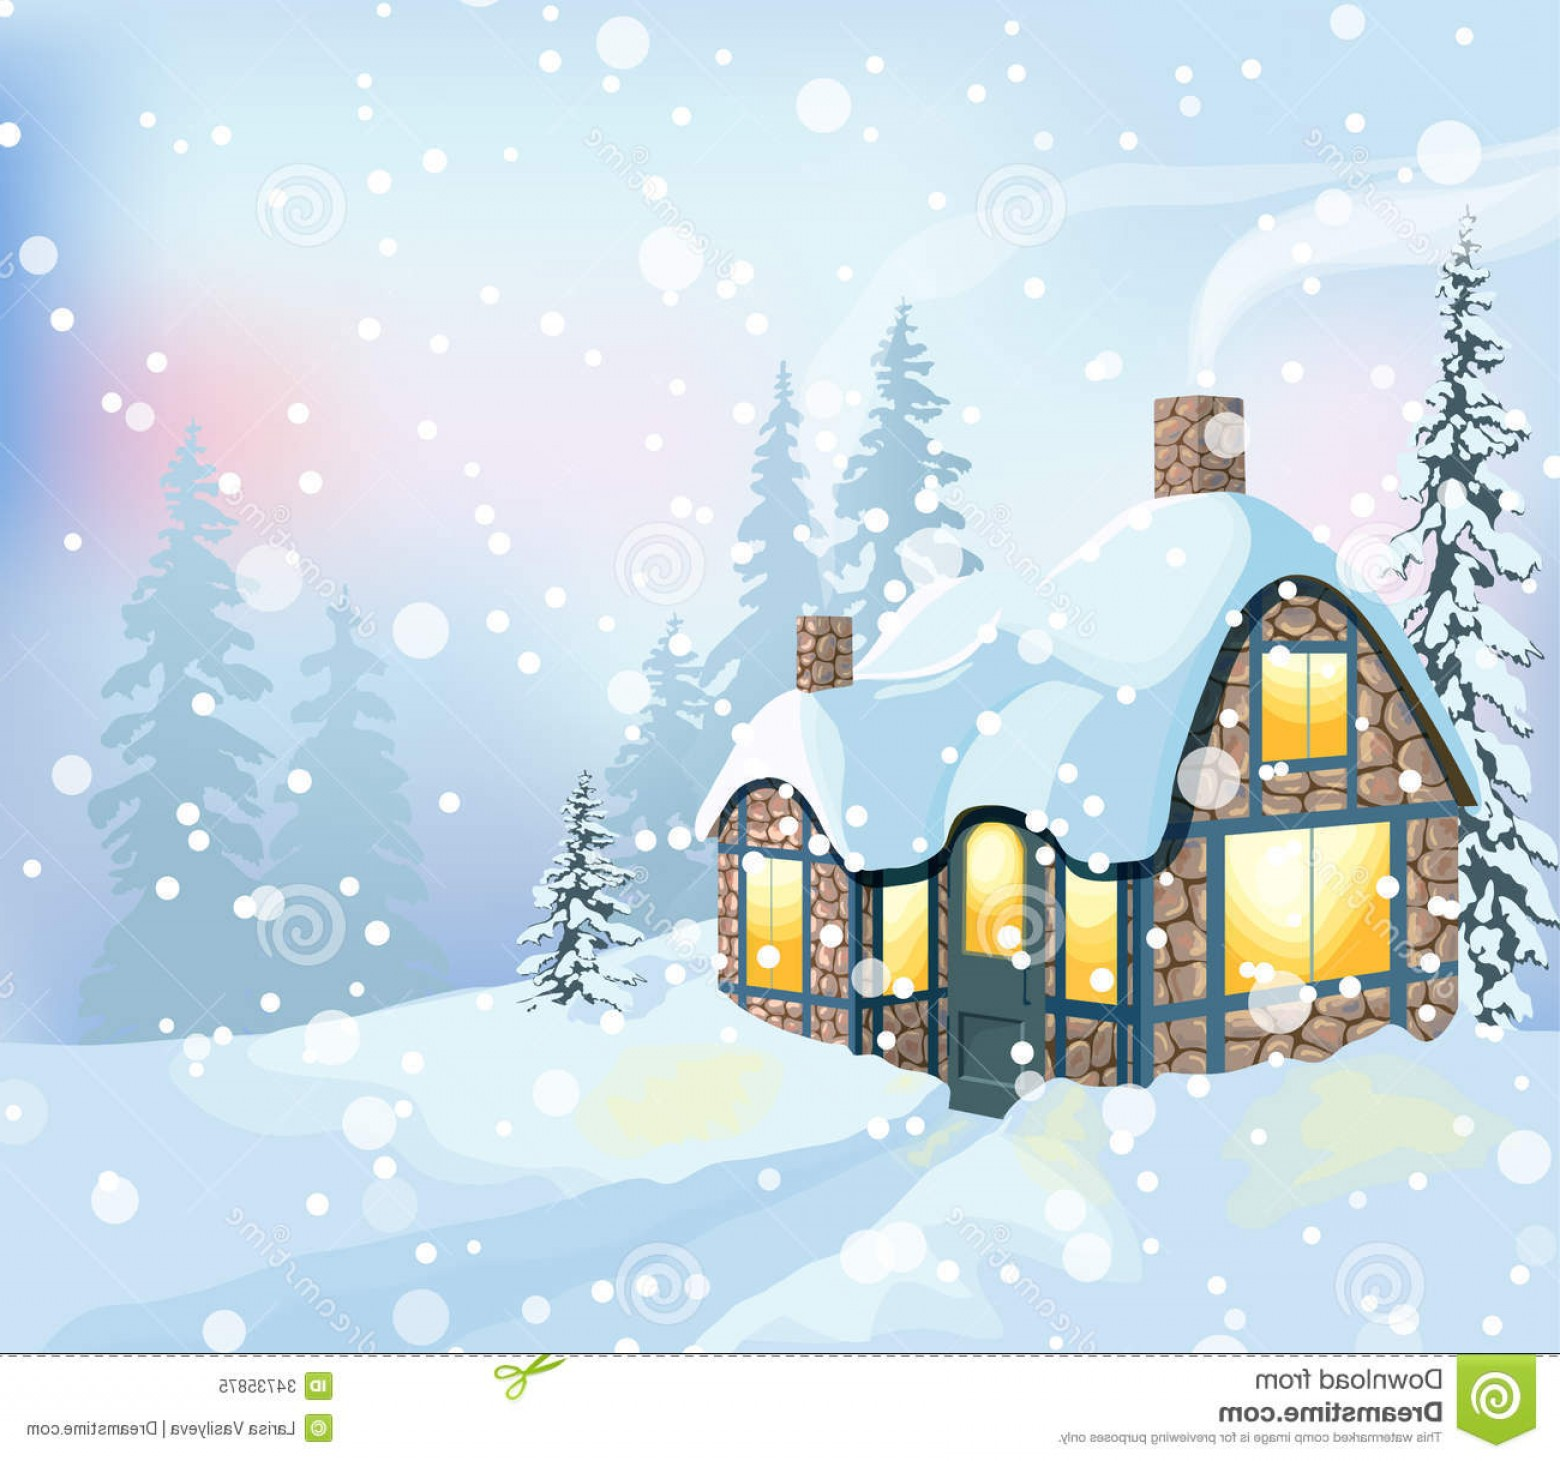 Free Winter Vector: Royalty Free Stock Photo Winter Landscape Holidays Christmas Vector Illustration House Snowy Forest Image